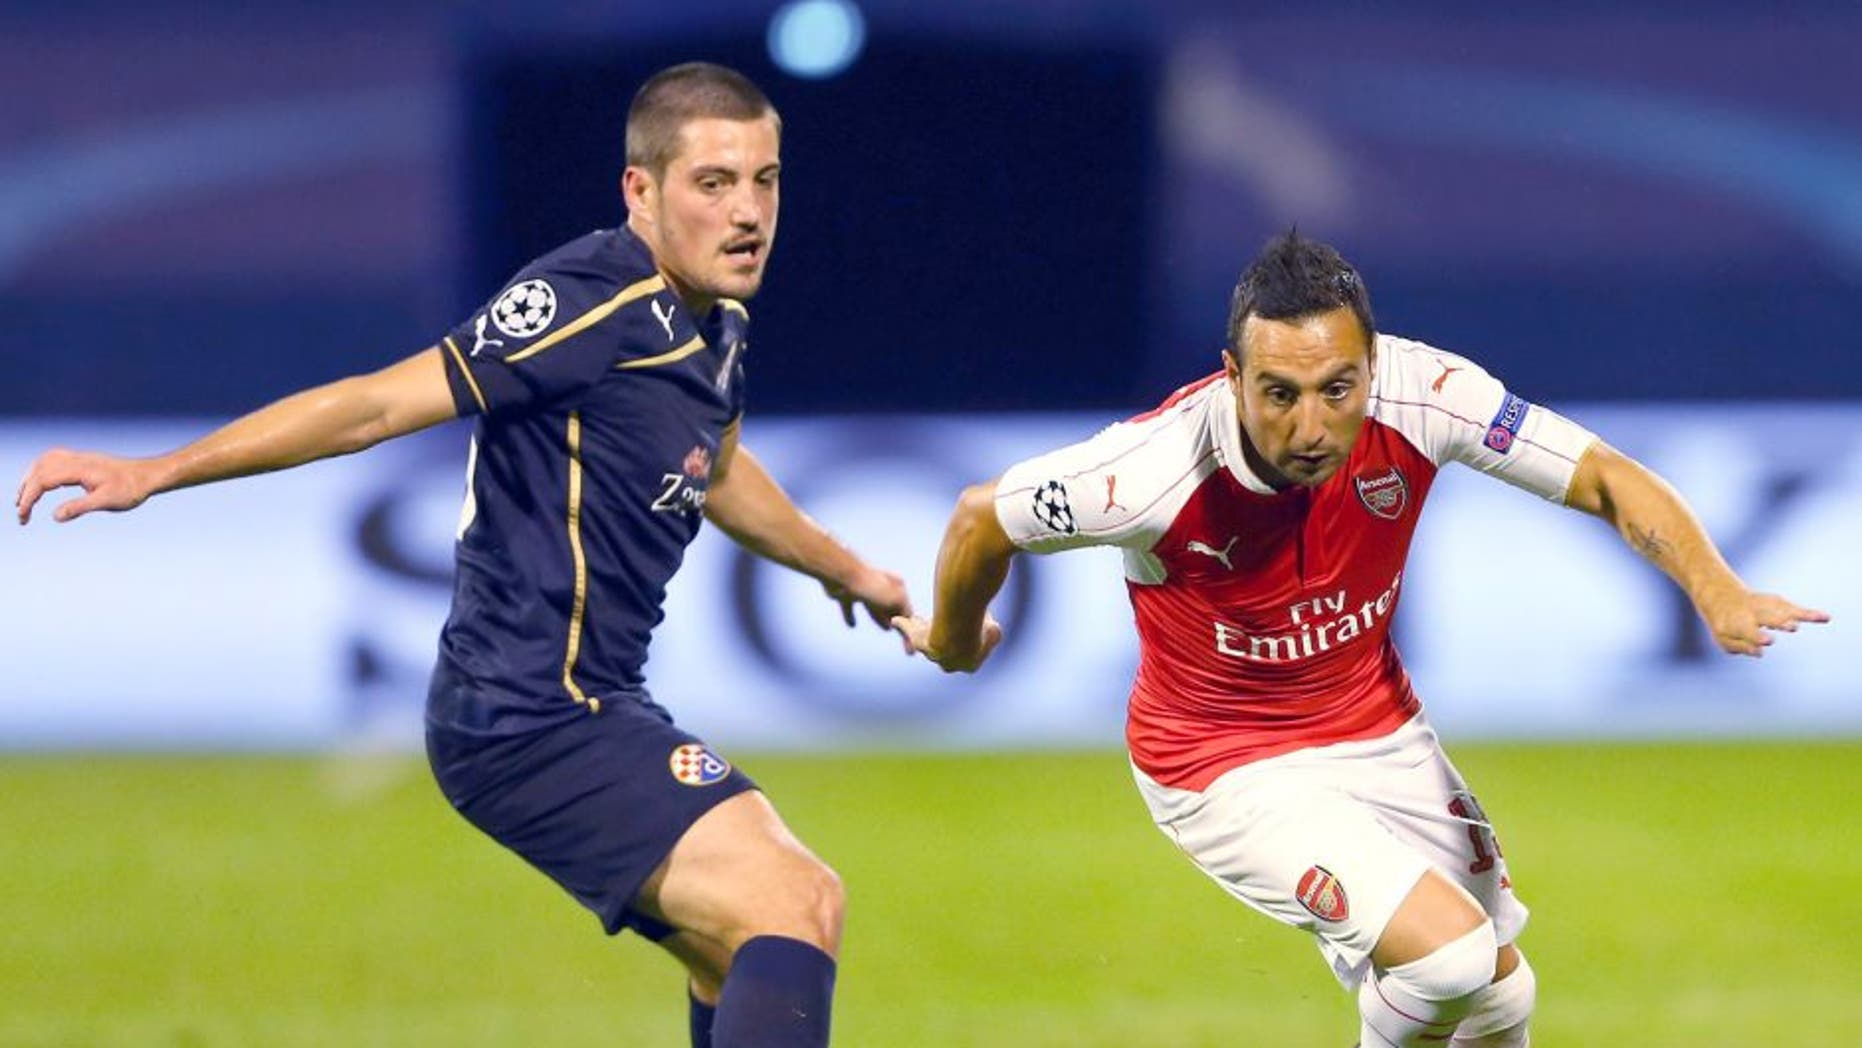 ZAGREB, CROATIA - SEPTEMBER 16: Santi Cazorla of Arsenal goes past Arijan Ademi of Dinamo Zagreb during the UEFA Champions League Group F match between Dinamo Zagreb and Arsenal at Maksimir Stadium on September 16, 2015 in Zagreb, Croatia. (Photo by Alexander Hassenstein/Getty Images)